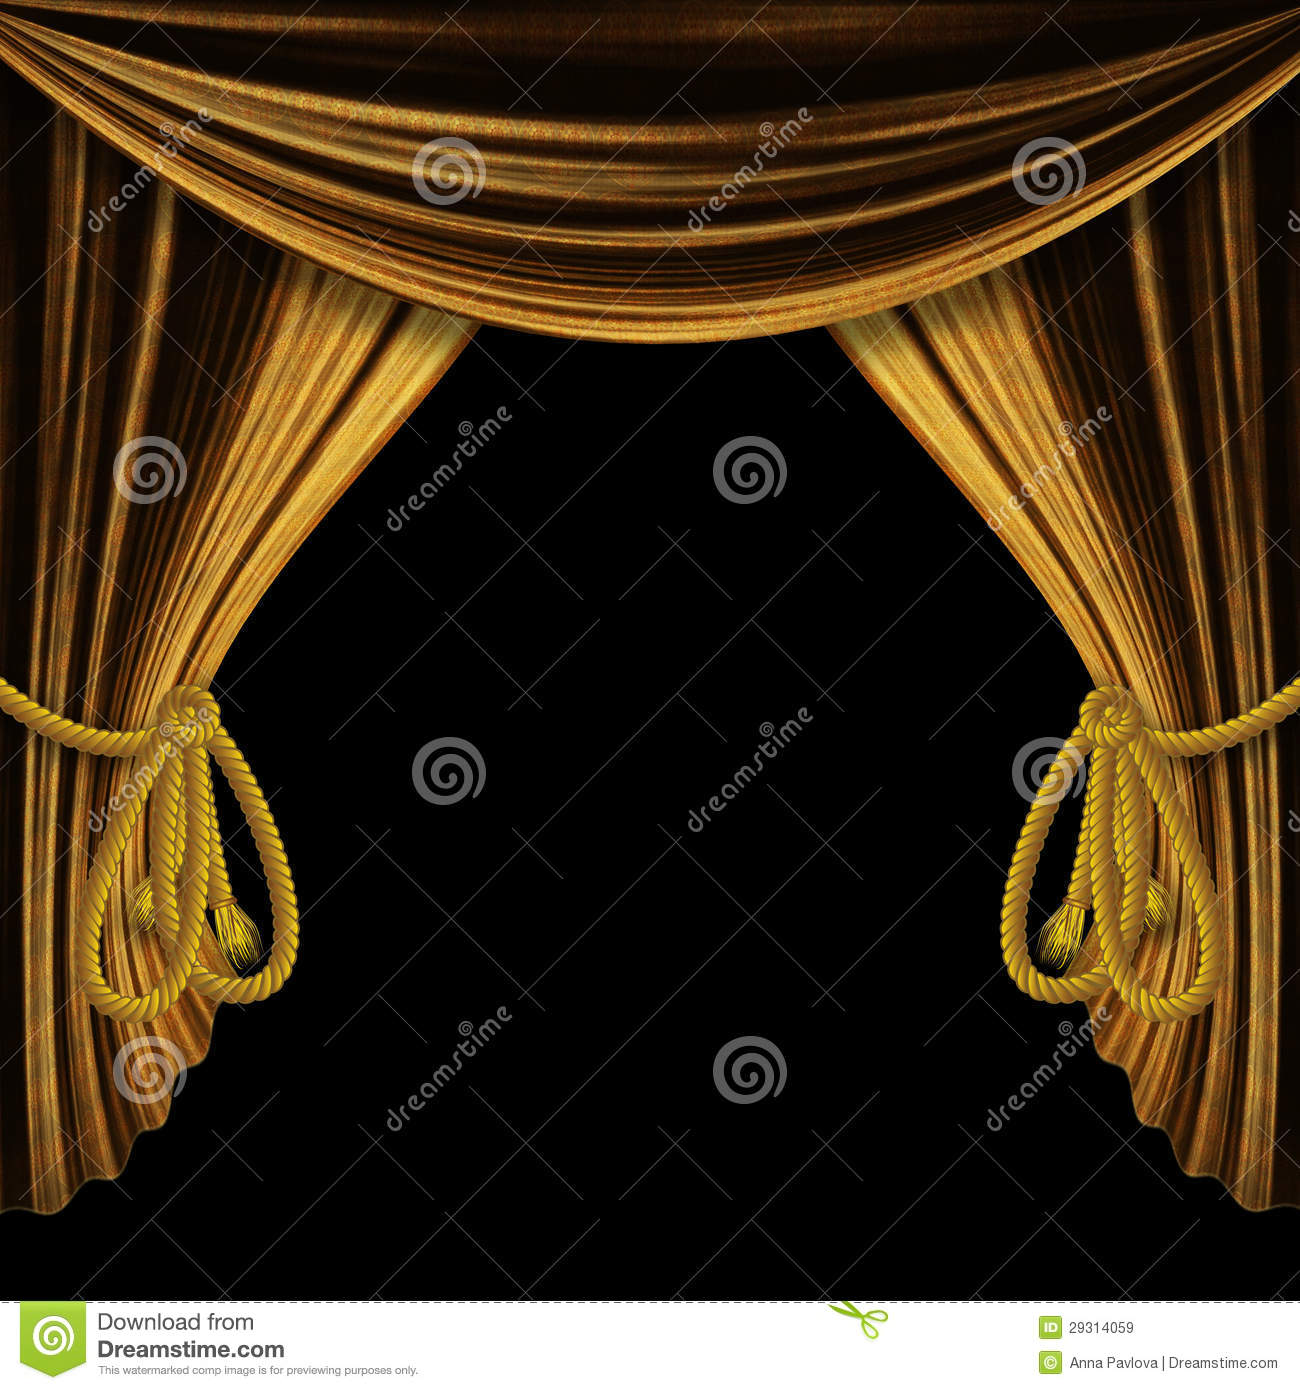 Open theater drapes or stage curtains royalty free stock image image - Theater Theater Stage Opened Gold Curtains On Black Background Royalty Free Stock Images